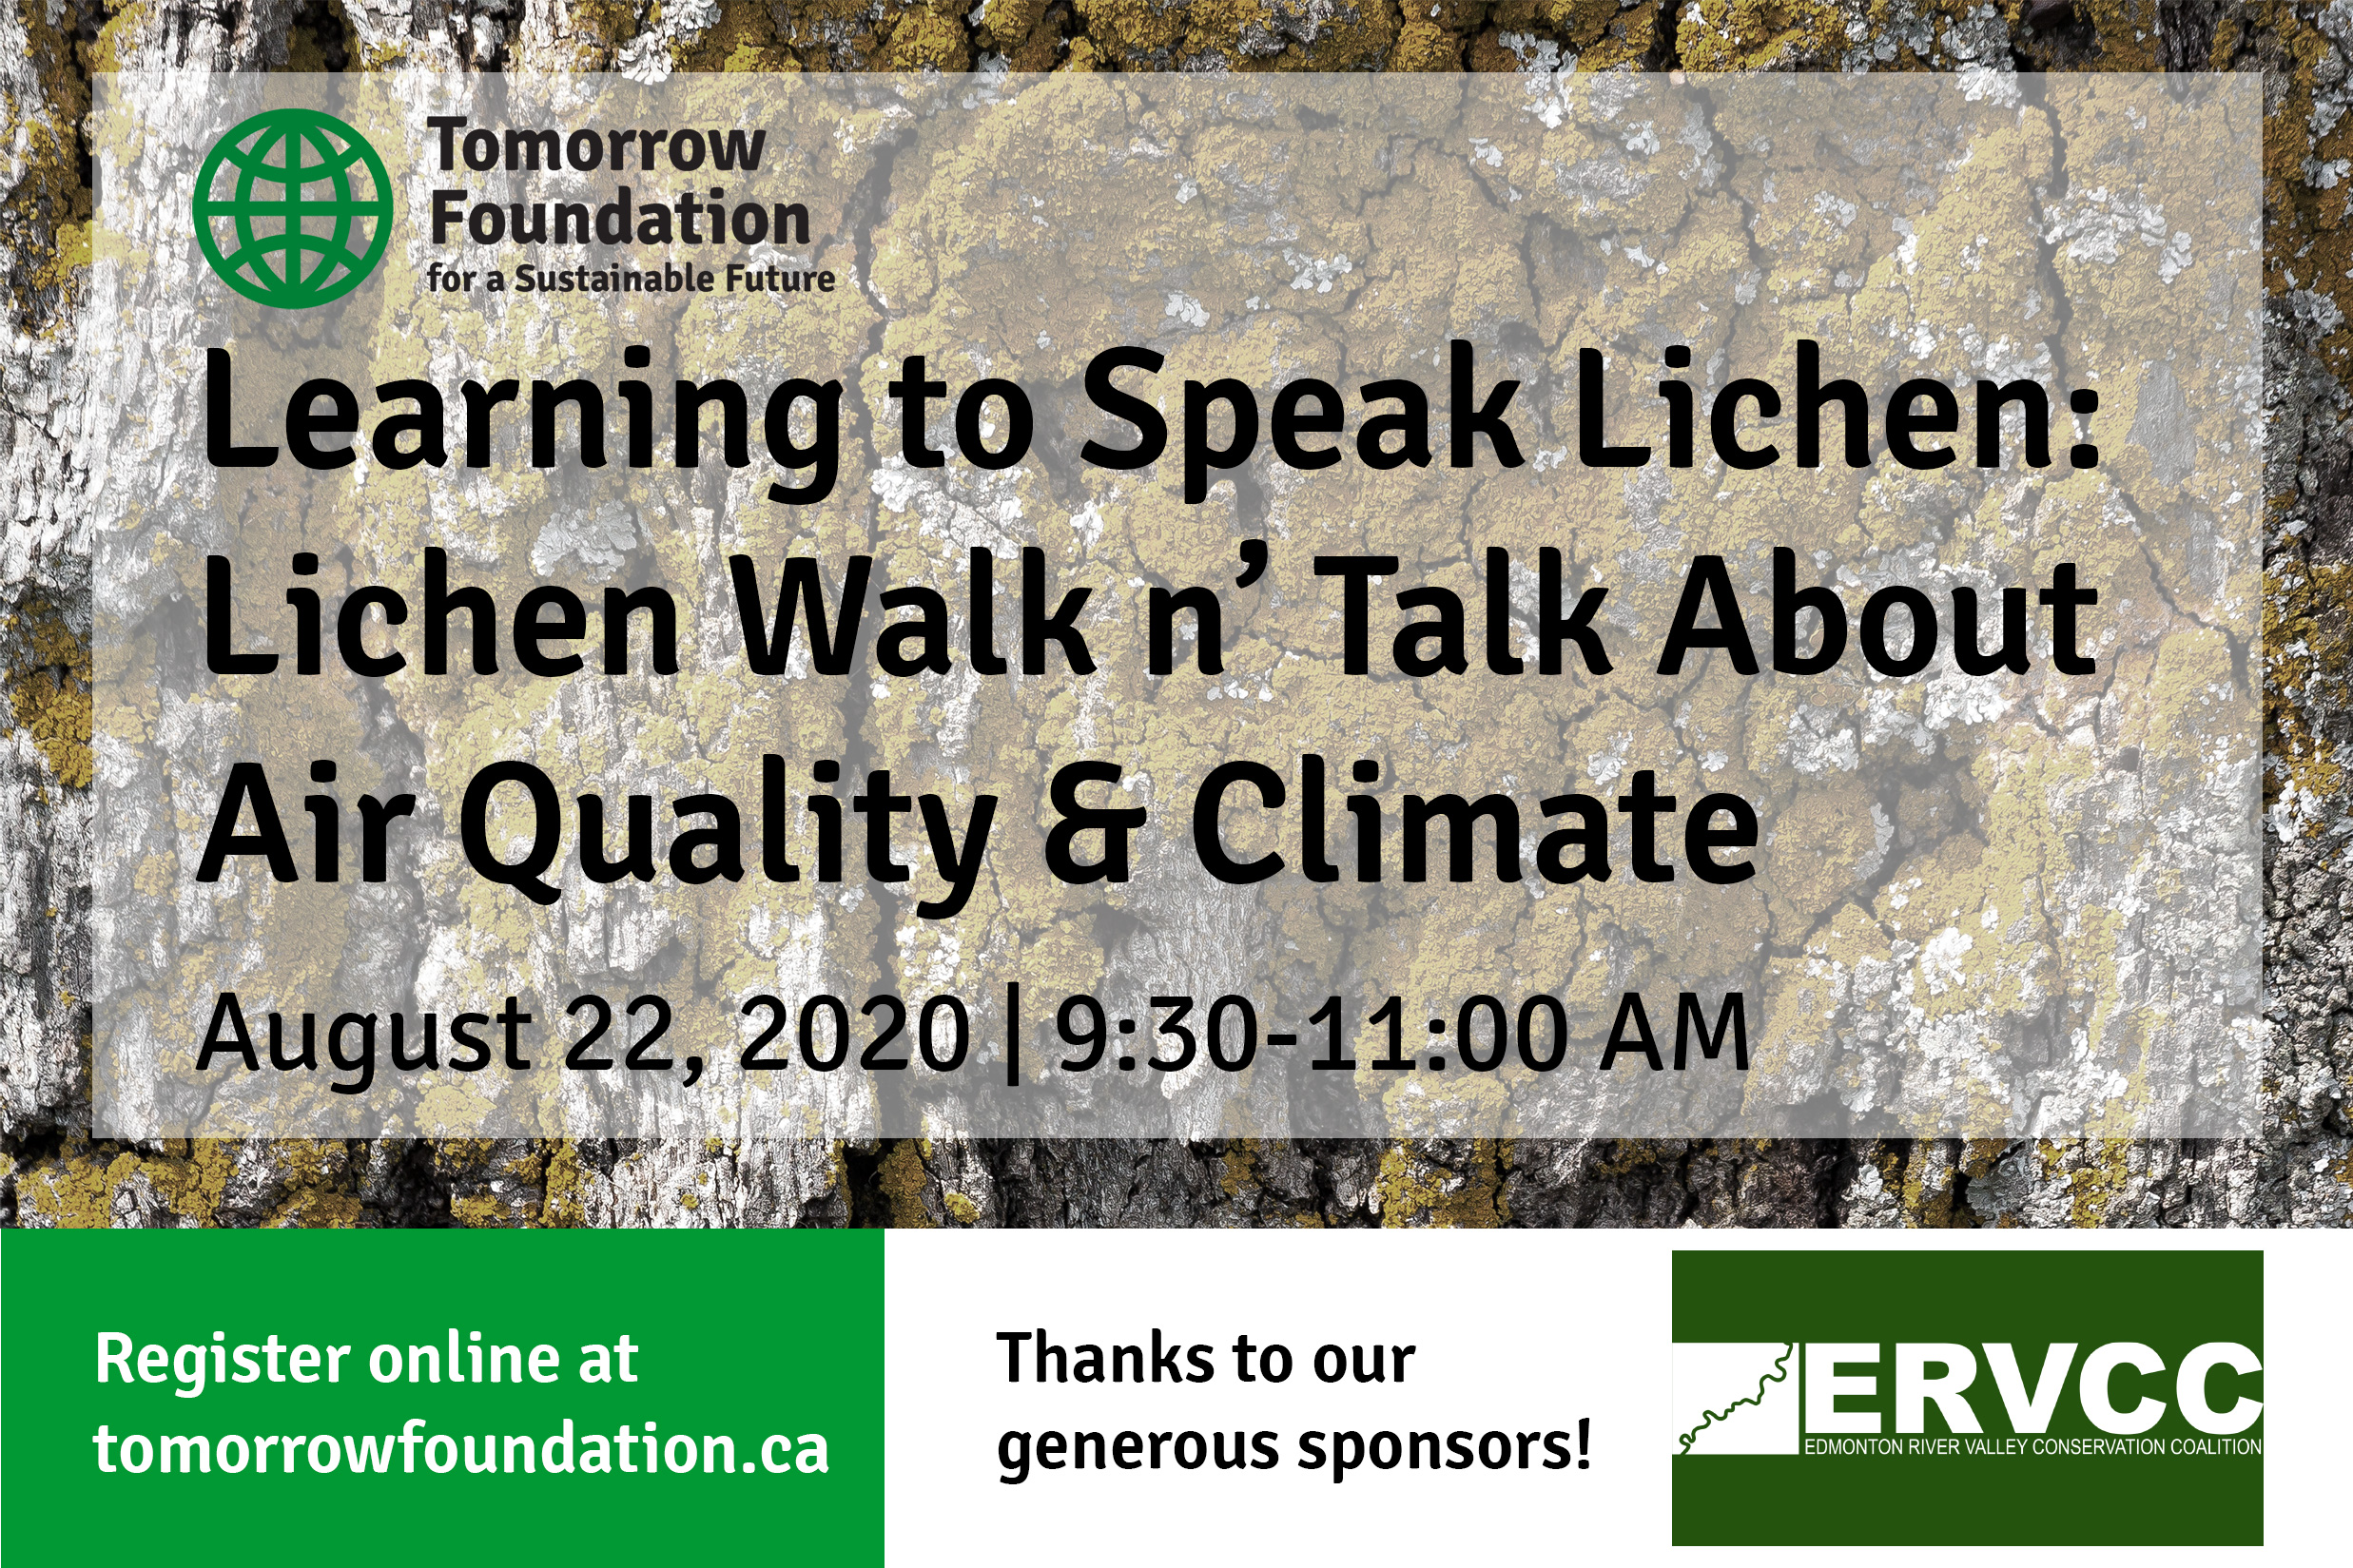 Learning to Speak Lichen: Lichen Walk 'n' Talk About Air Quality and Climate